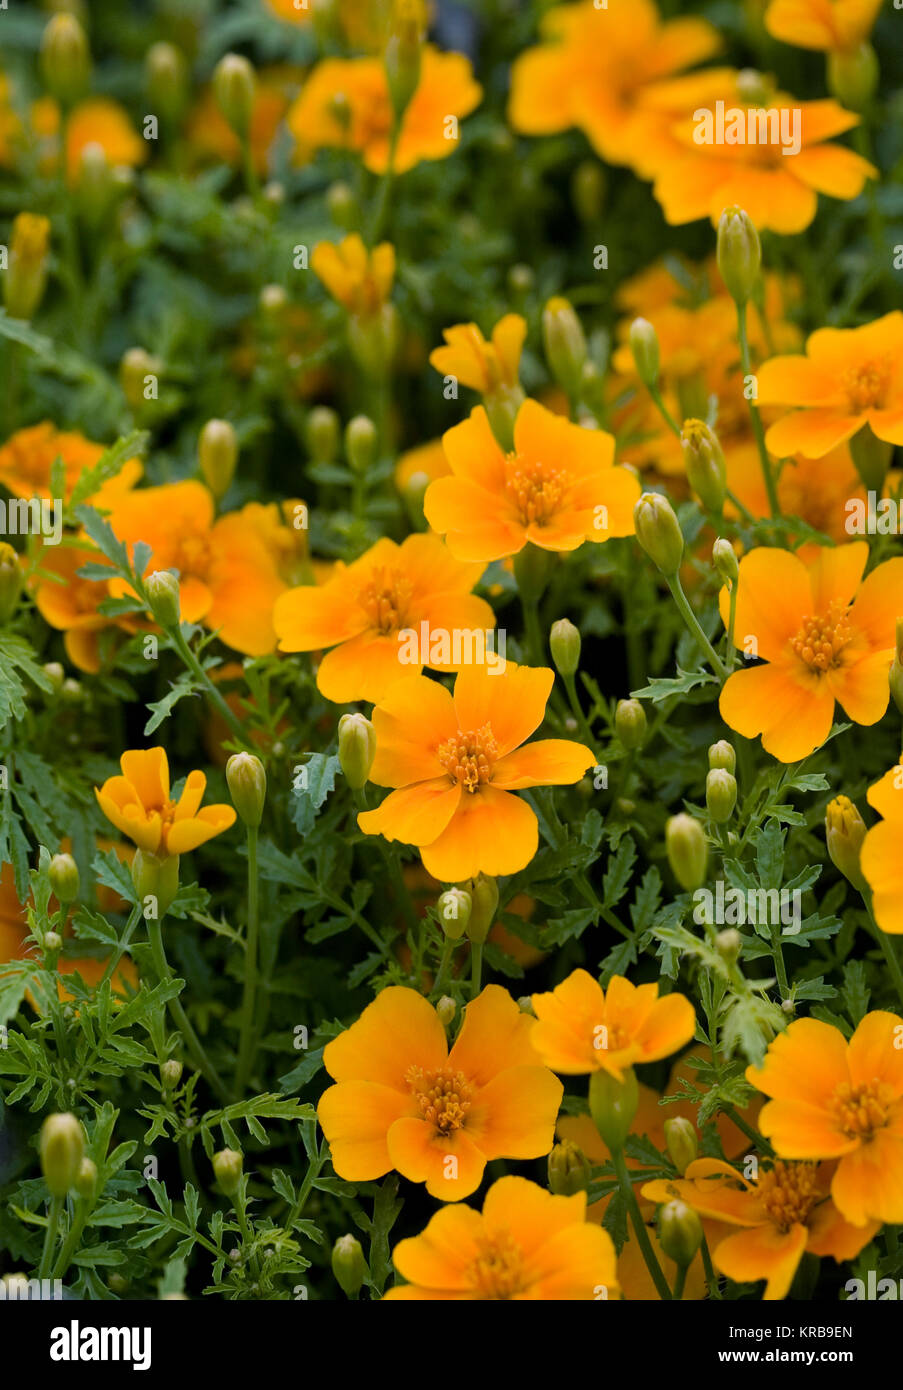 Tagetes patula flowers. French marigolds in the garden. - Stock Image